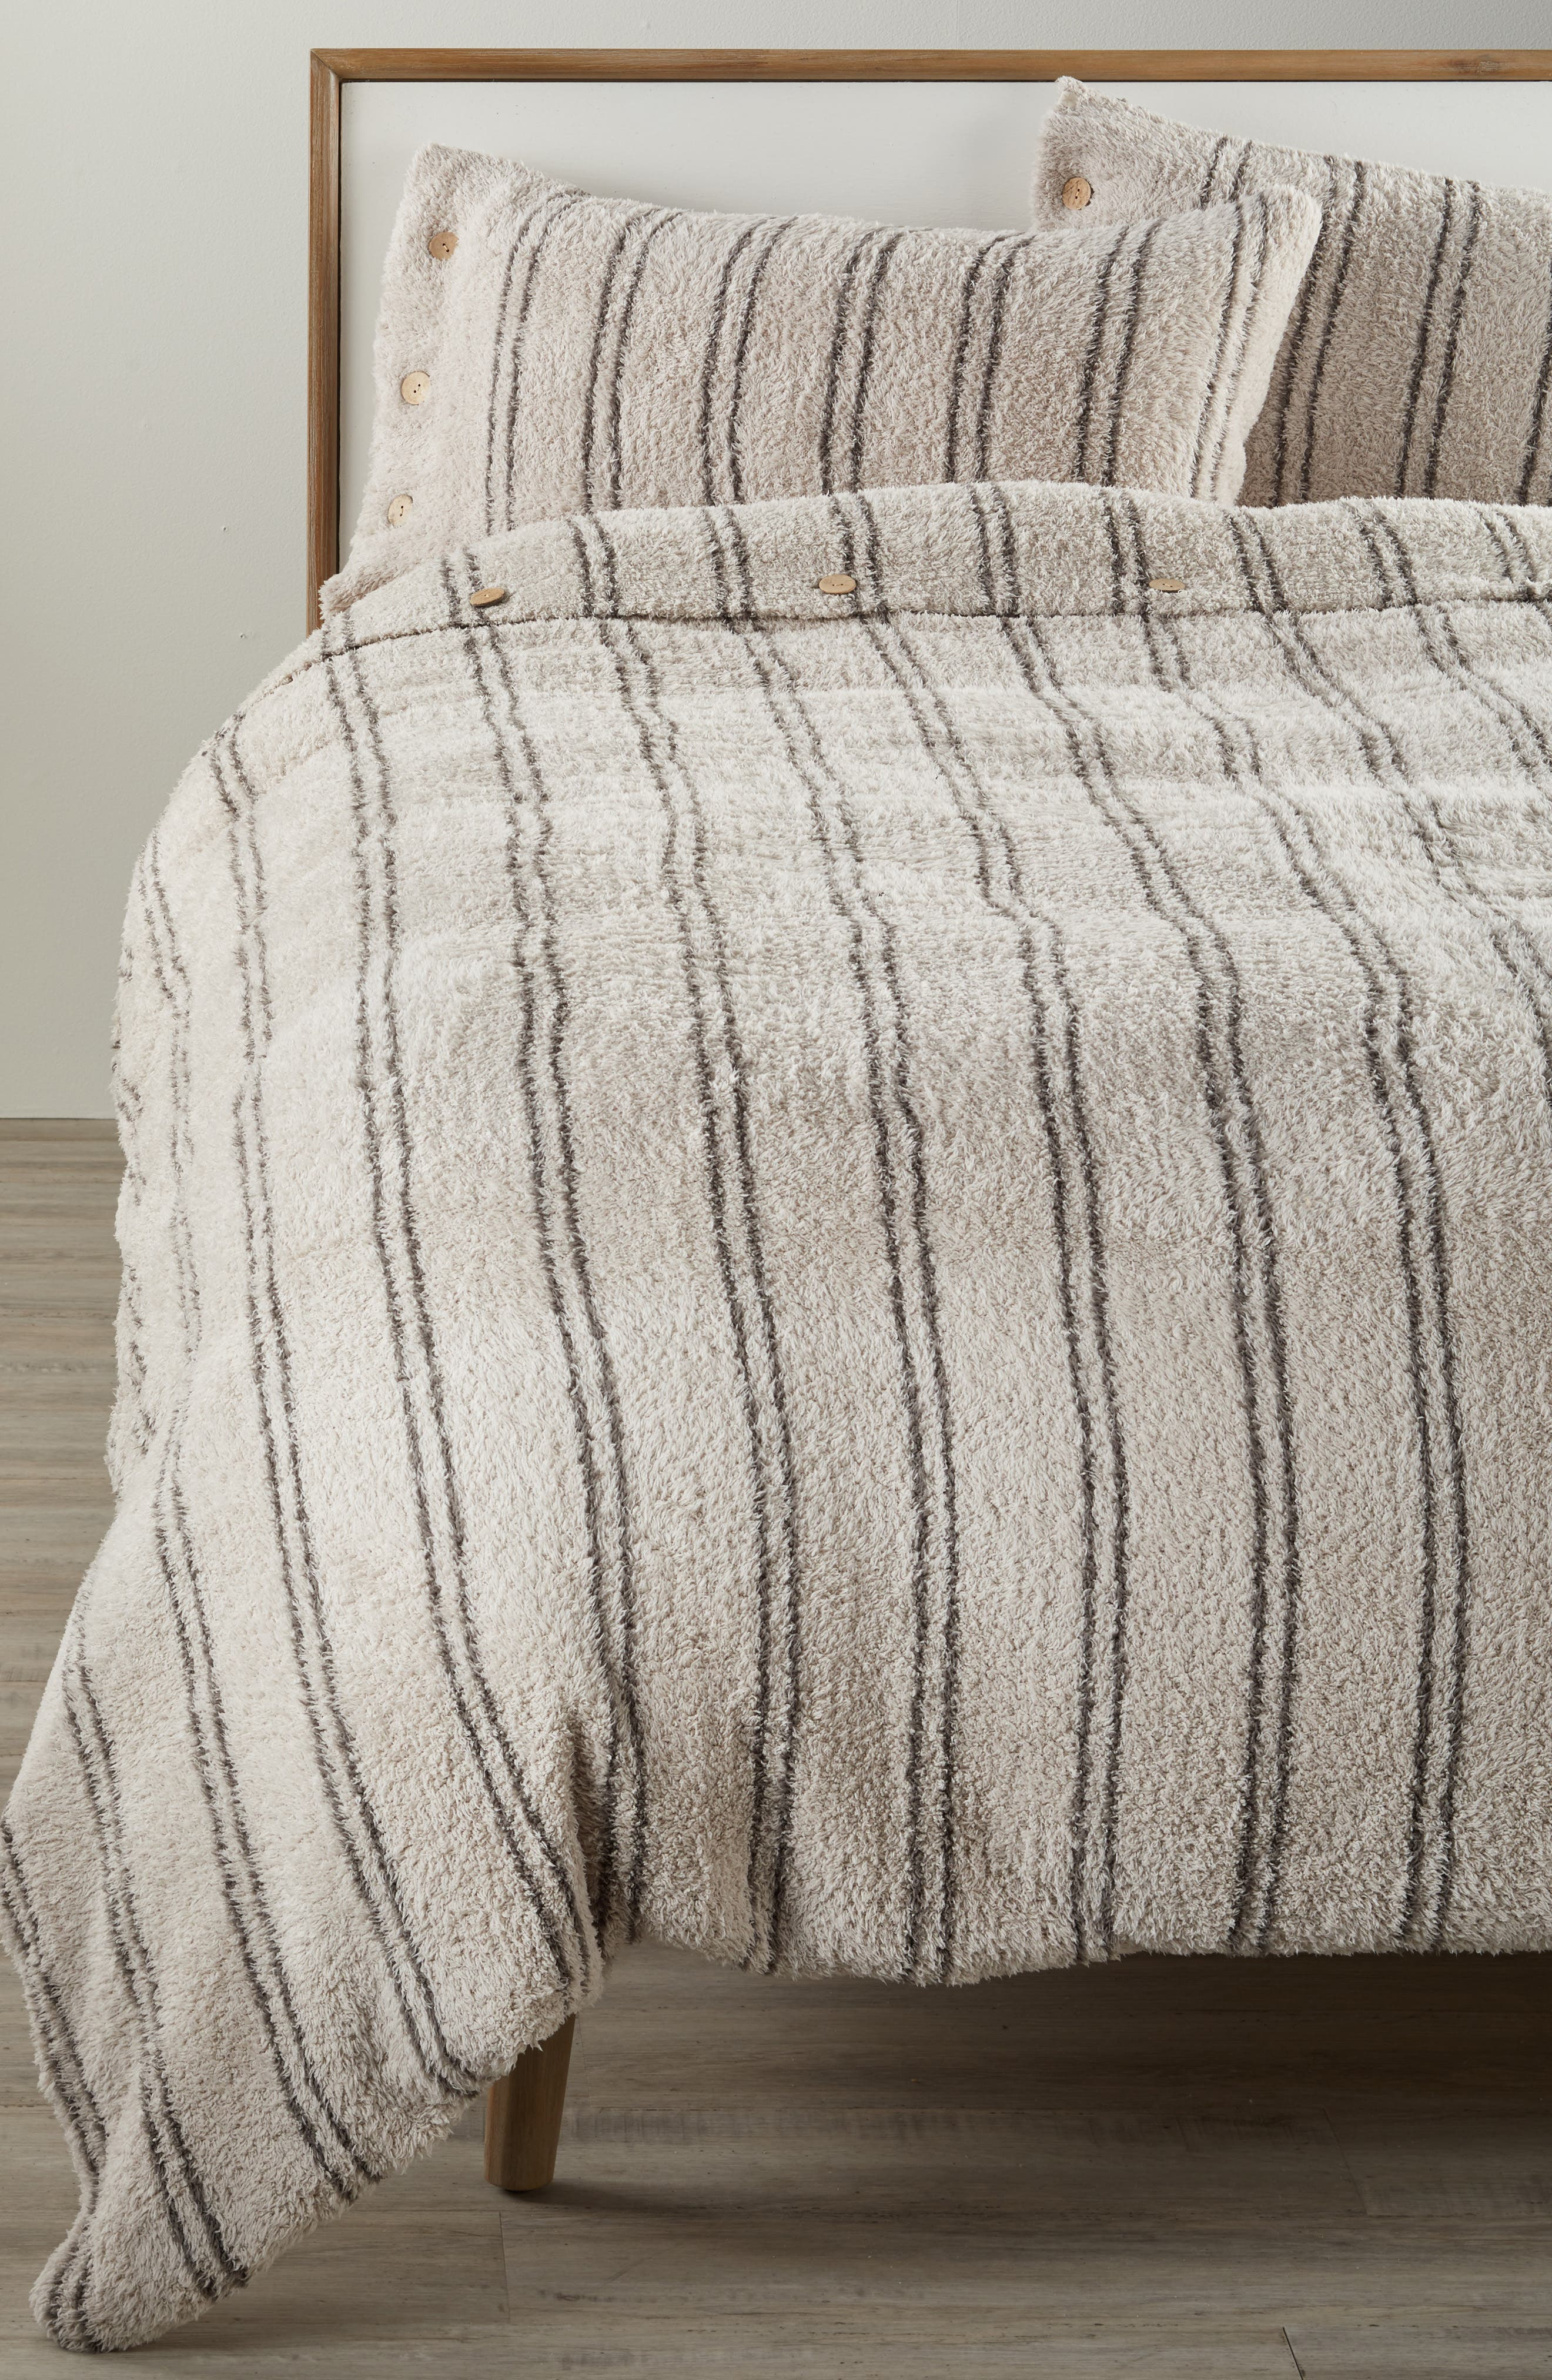 BAREFOOT DREAMS<SUP>®</SUP> CozyChic<sup>®</sup> Vertical Stripe Duvet Cover & Shams, Main, color, STONE/ CHARCOAL